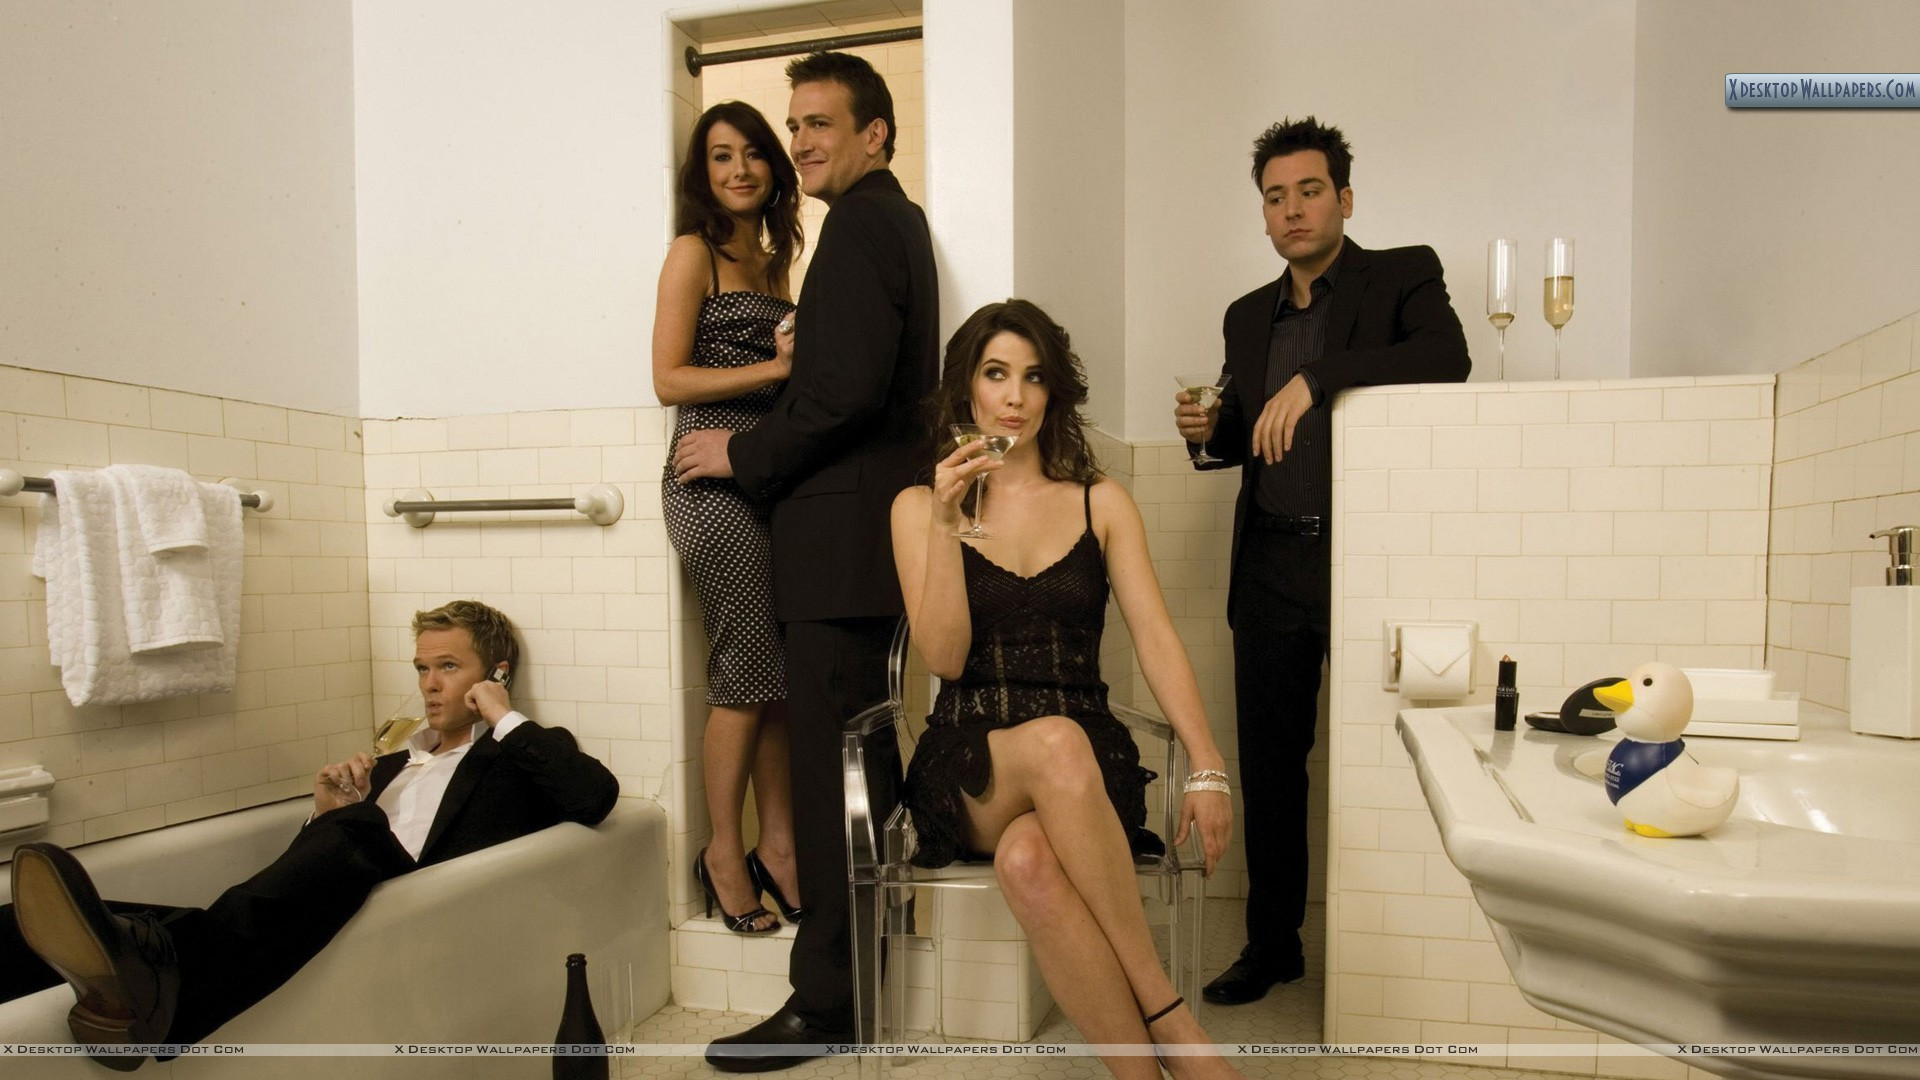 How i met your mother photoshoot in bathroom wallpaper for Bathroom photoshoots